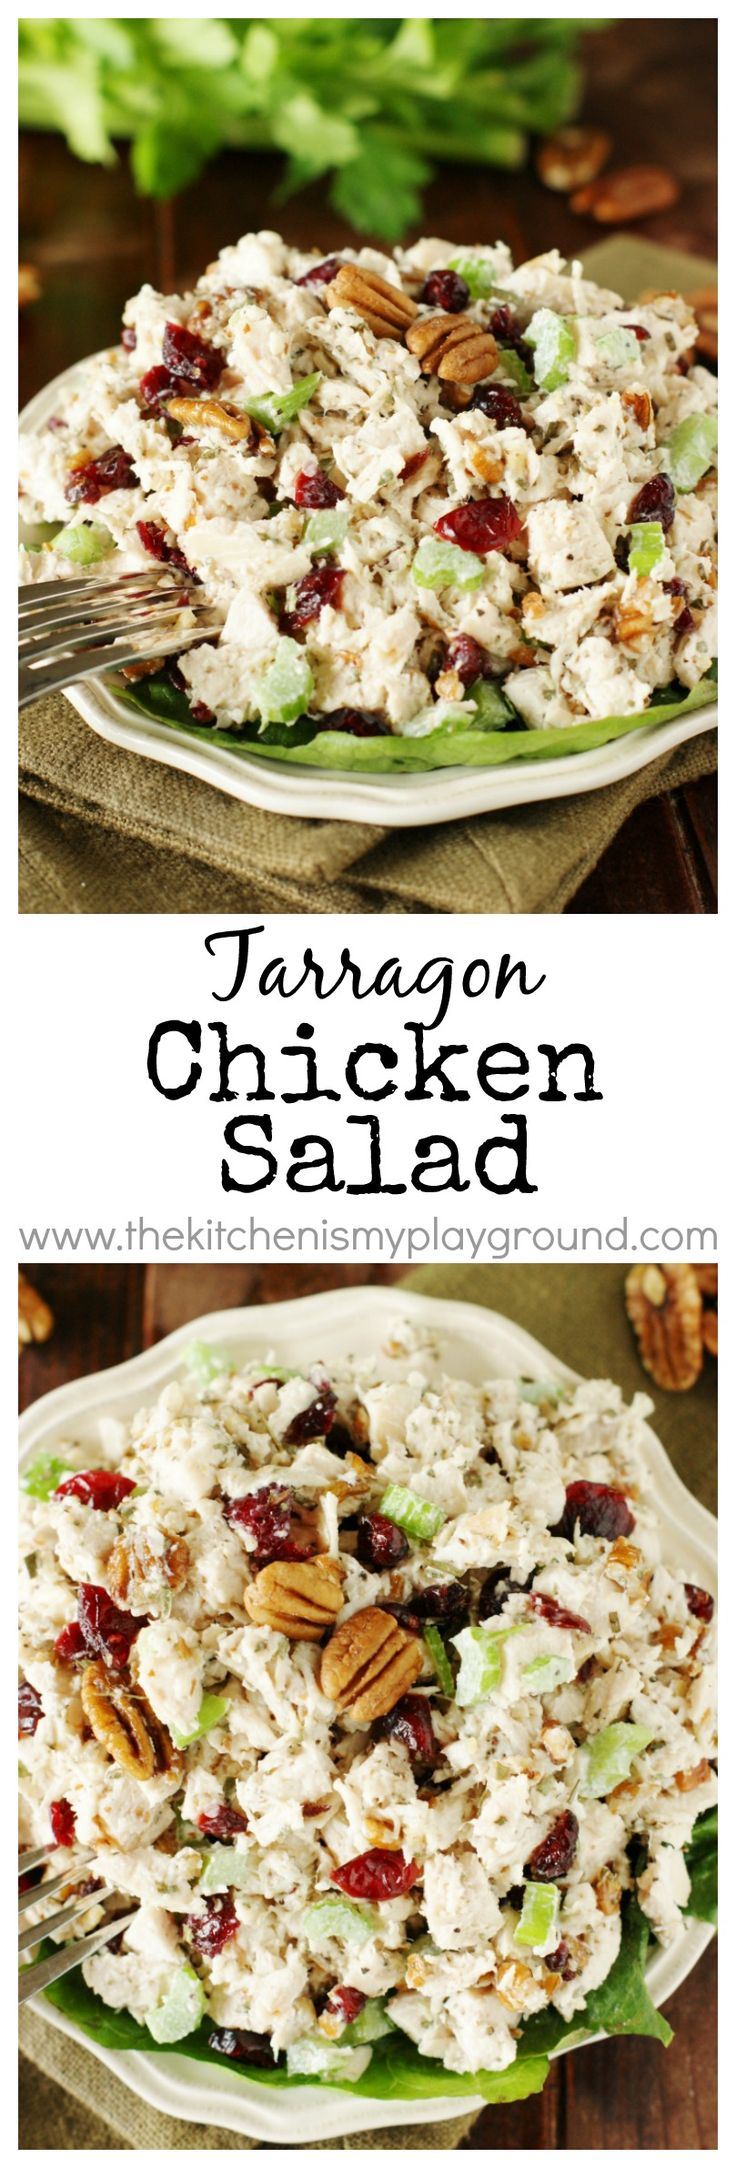 Tarragon Chicken Salad ~ Loaded with big flavor from tarragon, dried cranberries, and chopped pecans.  Perfect over greens or in {the best} chicken salad sandwiches!   www.thekitchenism...